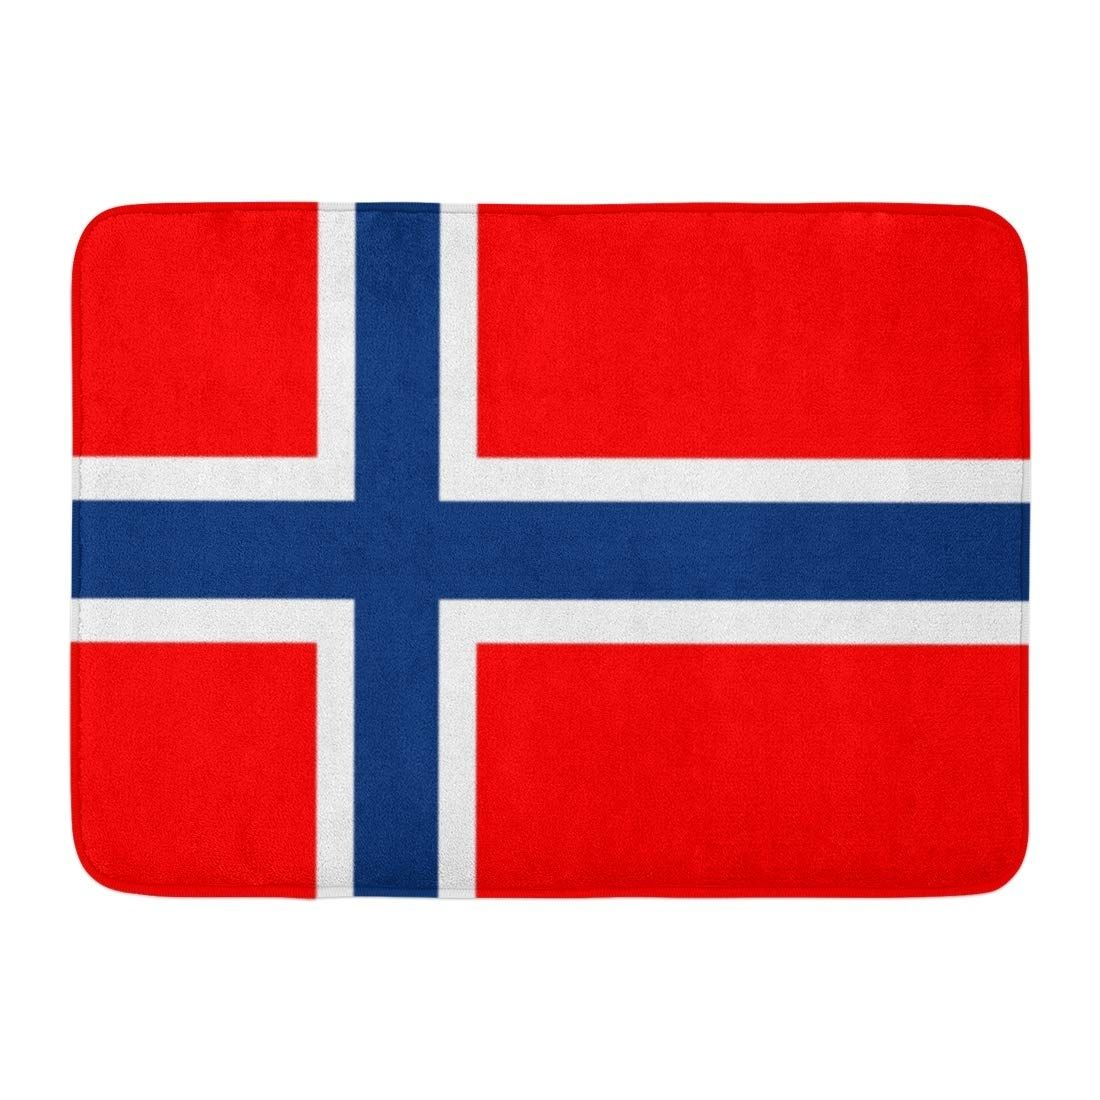 Blue Norway Norwegian Flag Red Accurate Correctly Country Culture Doormat Floor Rug Bath Mat 23 6x15 7 Inch In 2020 Norwegian Flag Norway Flag Flag Drawing